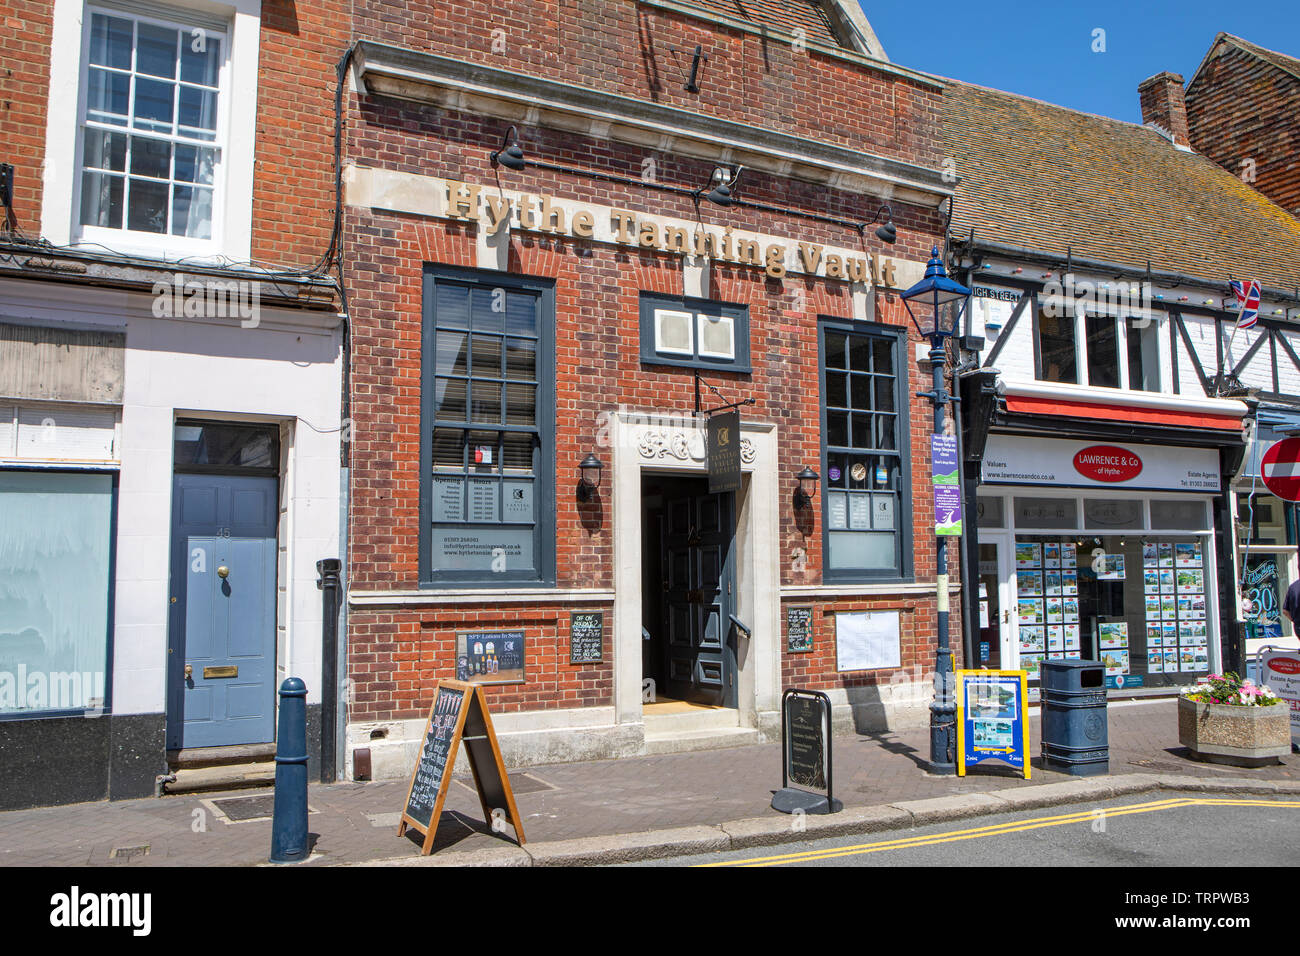 Bank In High Street Stock Photos & Bank In High Street Stock Images